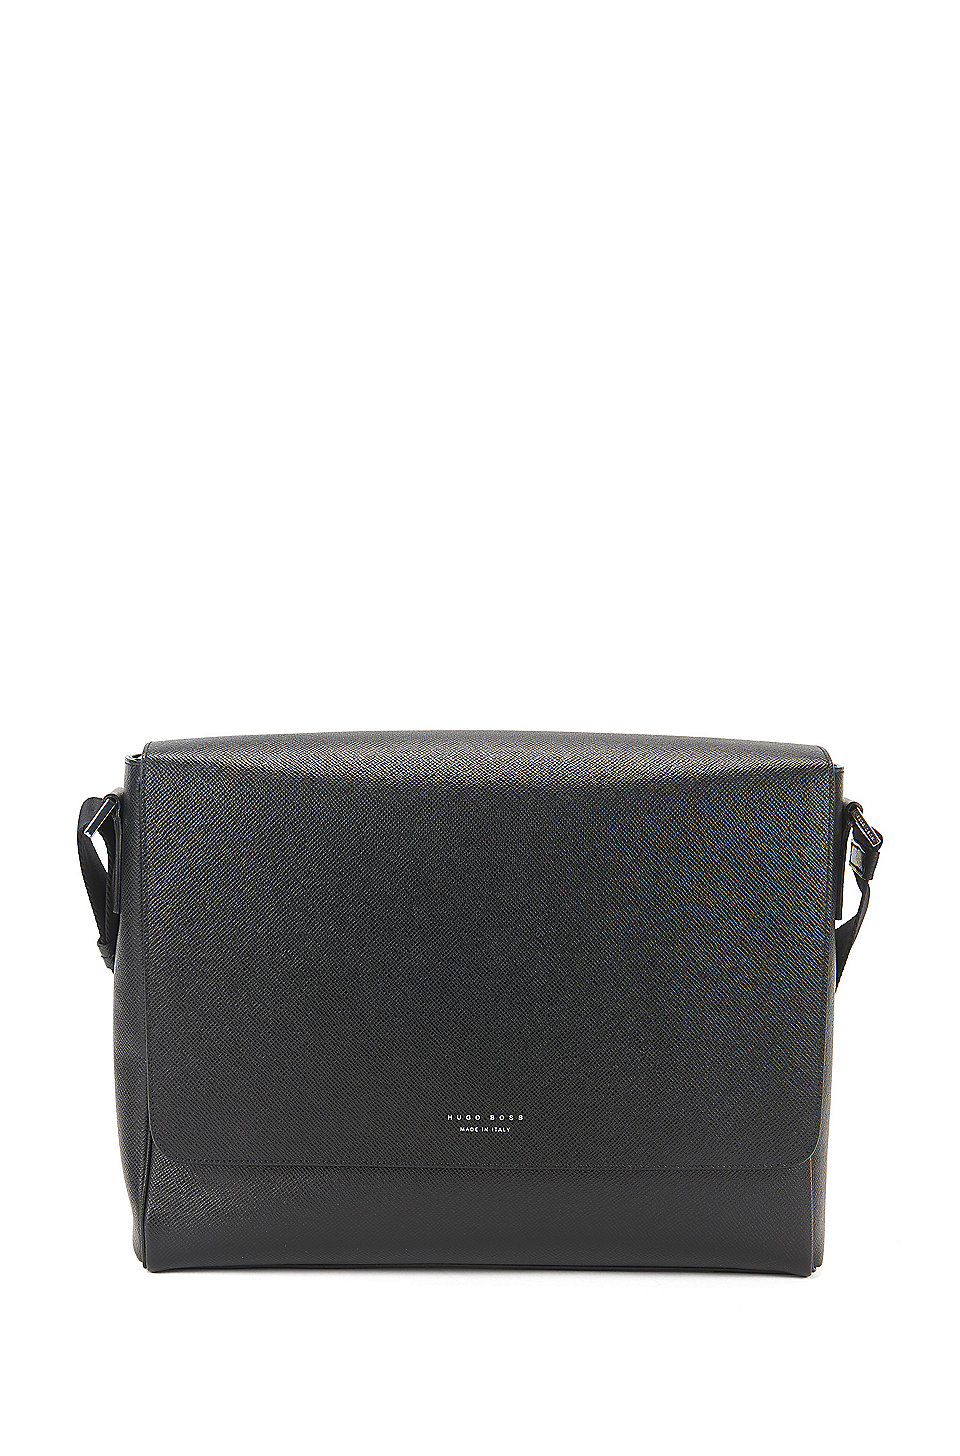 cac95d6f419 BOSS - Signature Collection messenger bag in grained palmellato leather